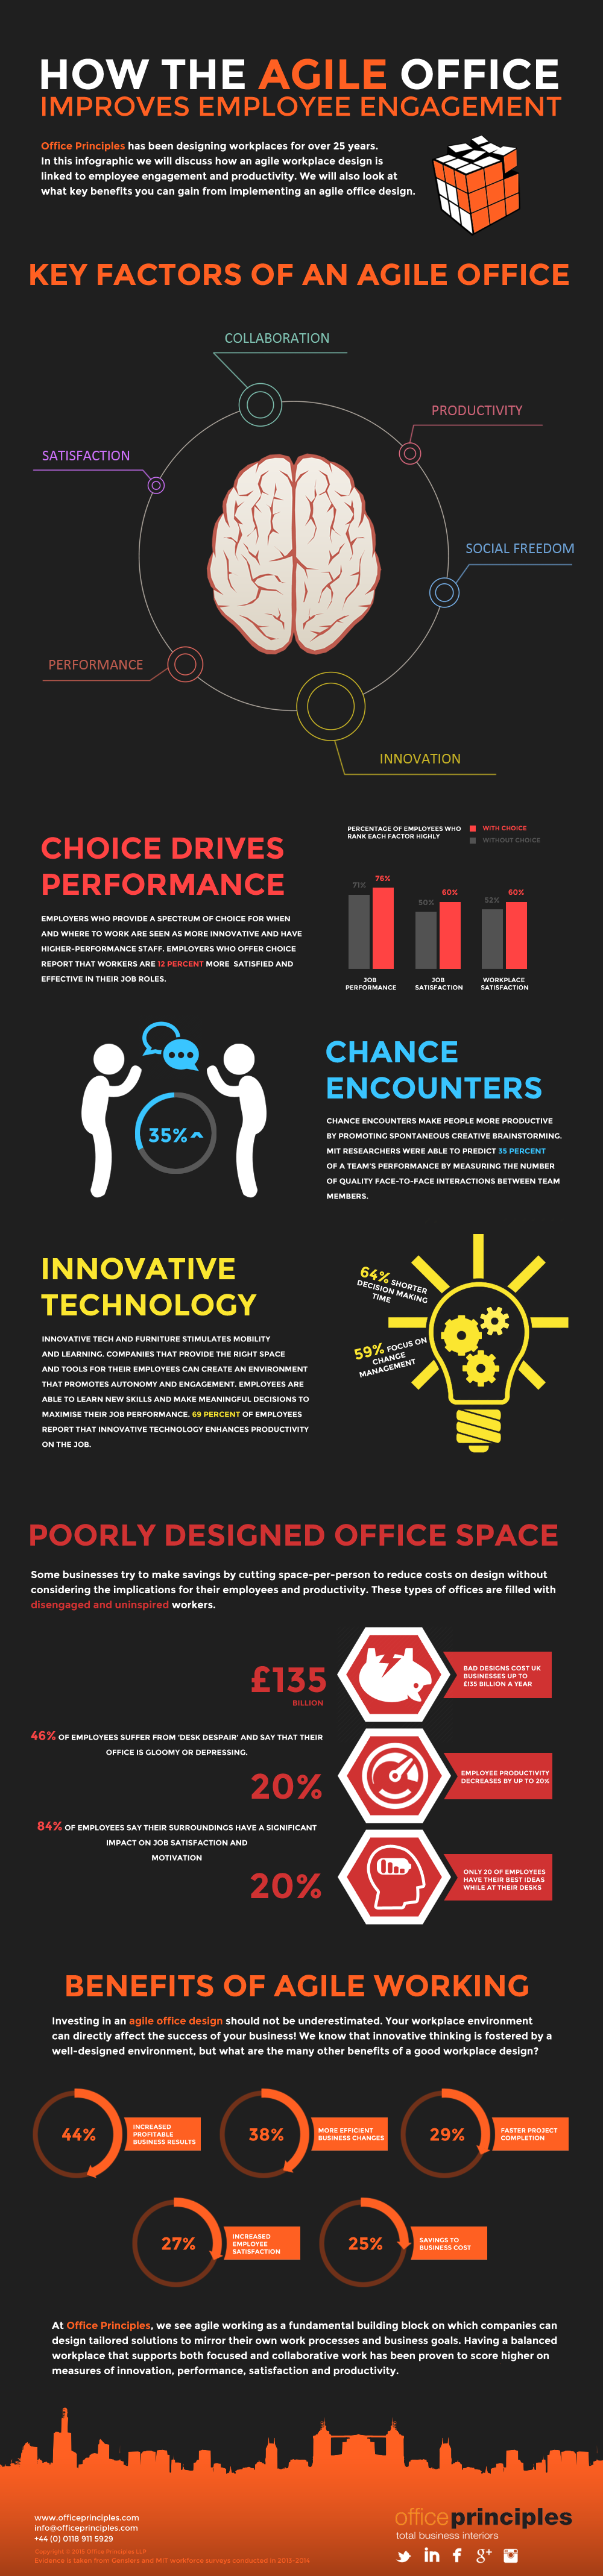 Infographic about the agile office and employee engagement